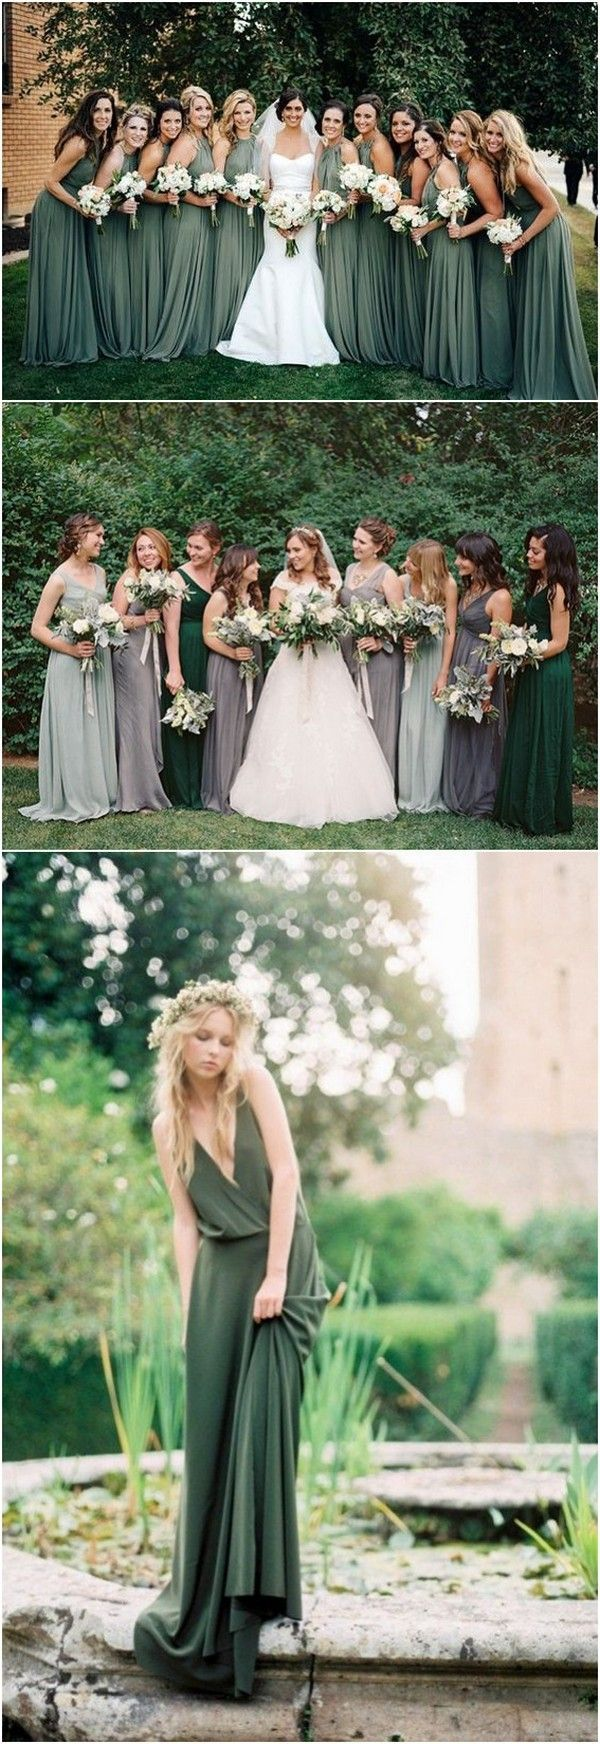 trending shades of green bridesmaid dresses